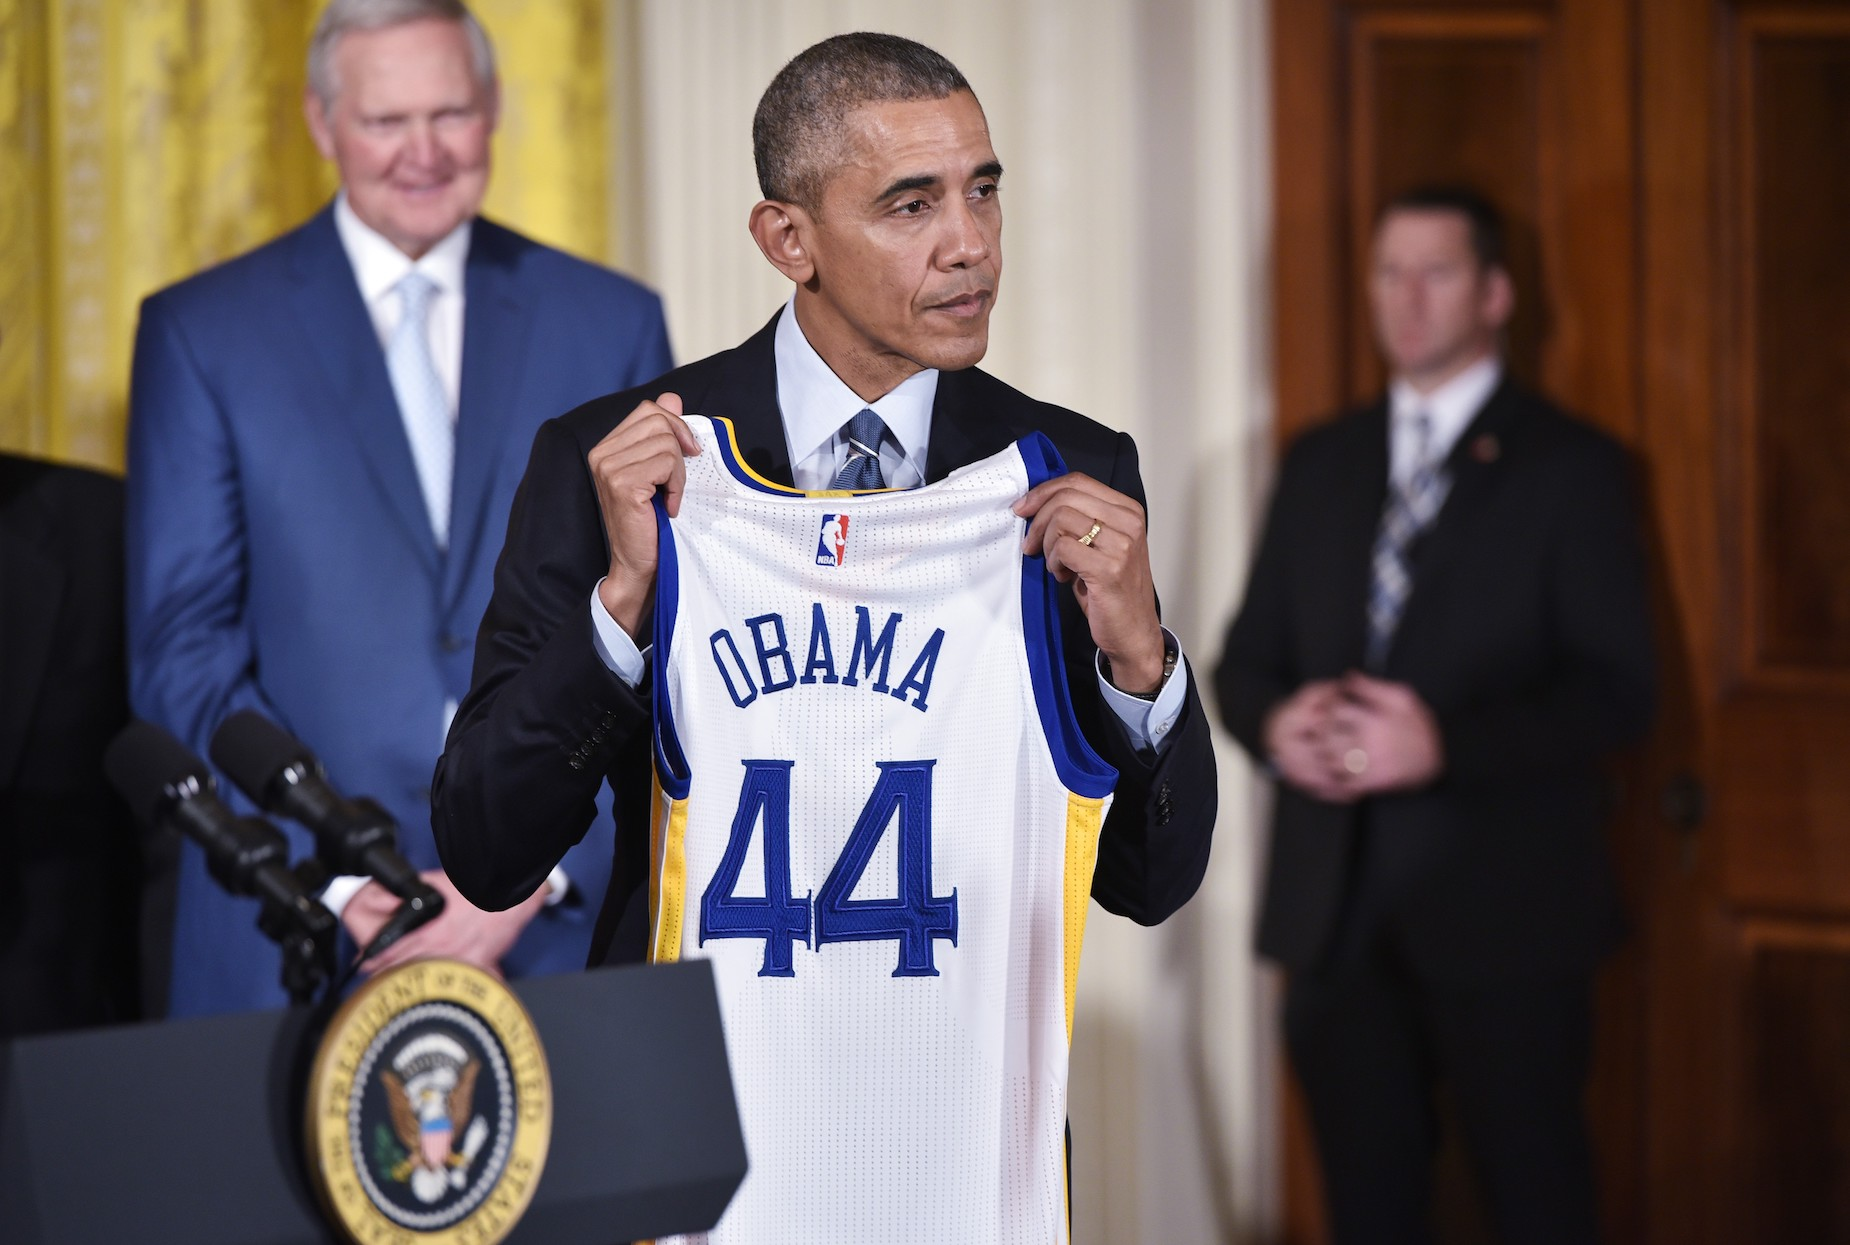 The Golden State Warriors are following Barack Obama's advice ahead of the 2020 NBA draft.